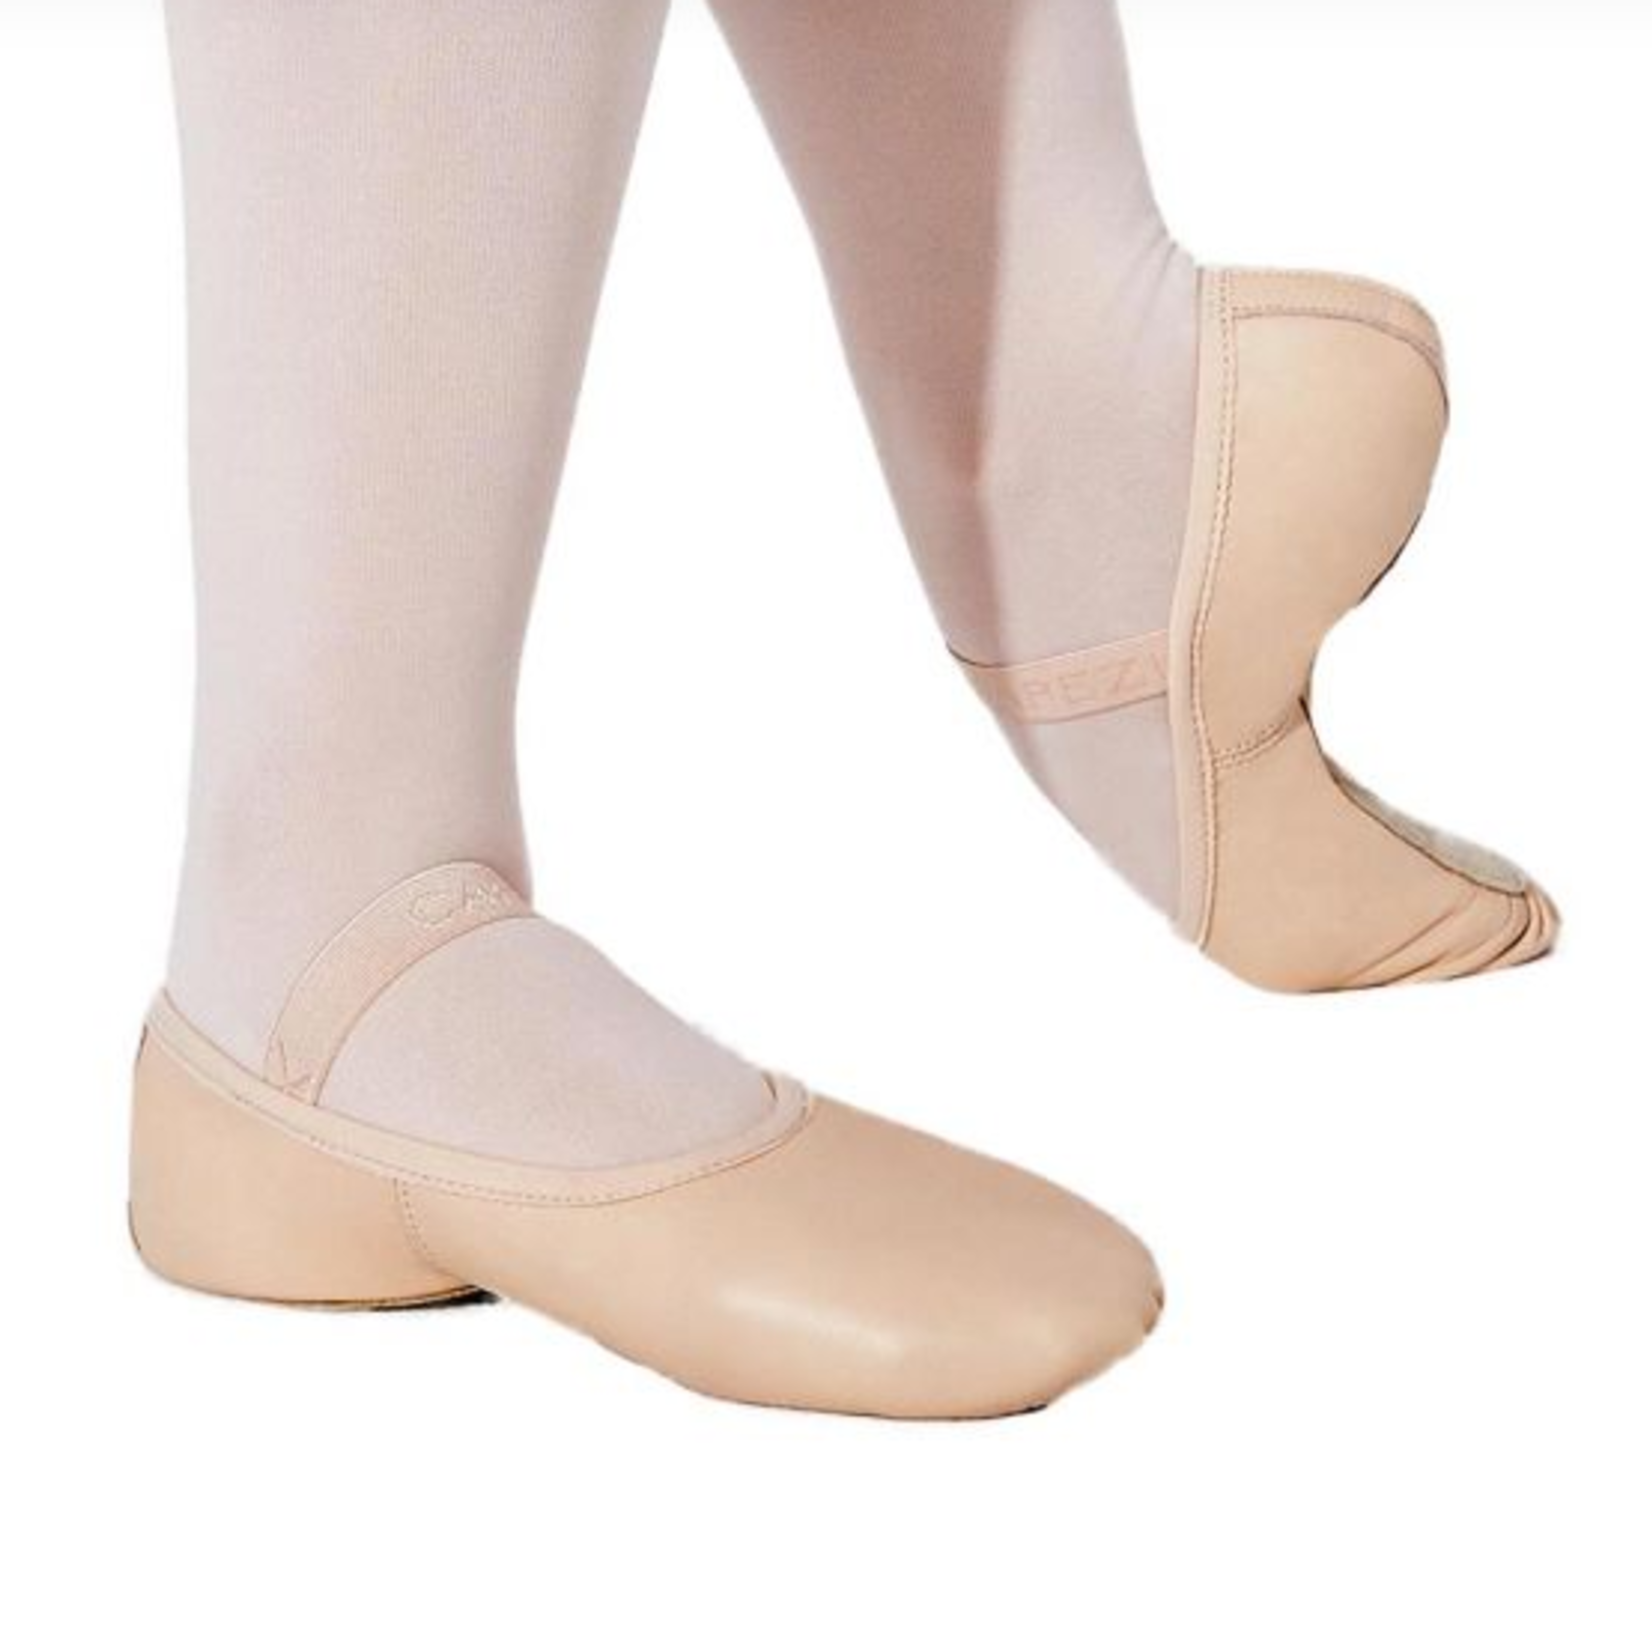 Capezio Capezio 212C Lily Child Full-Sole Leather Ballet